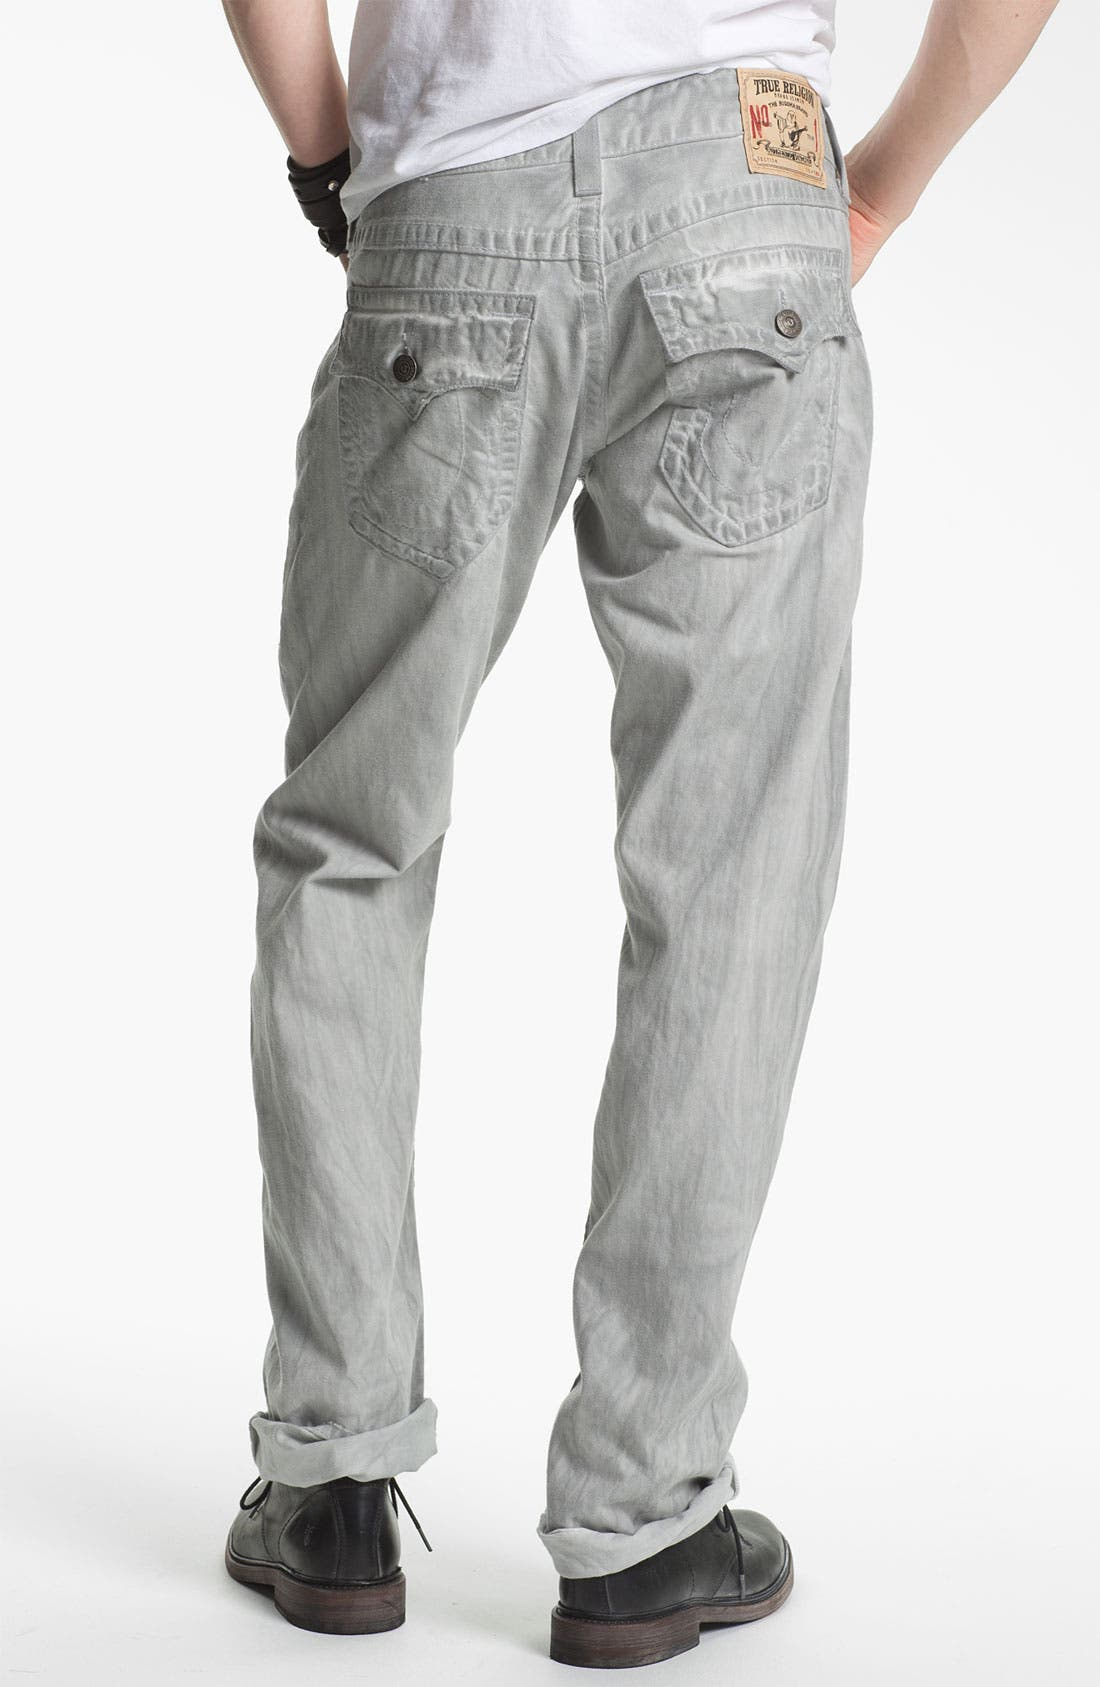 Alternate Image 1 Selected - True Religion Brand Jeans 'Ricky' Straight Leg Jeans (Pebble)